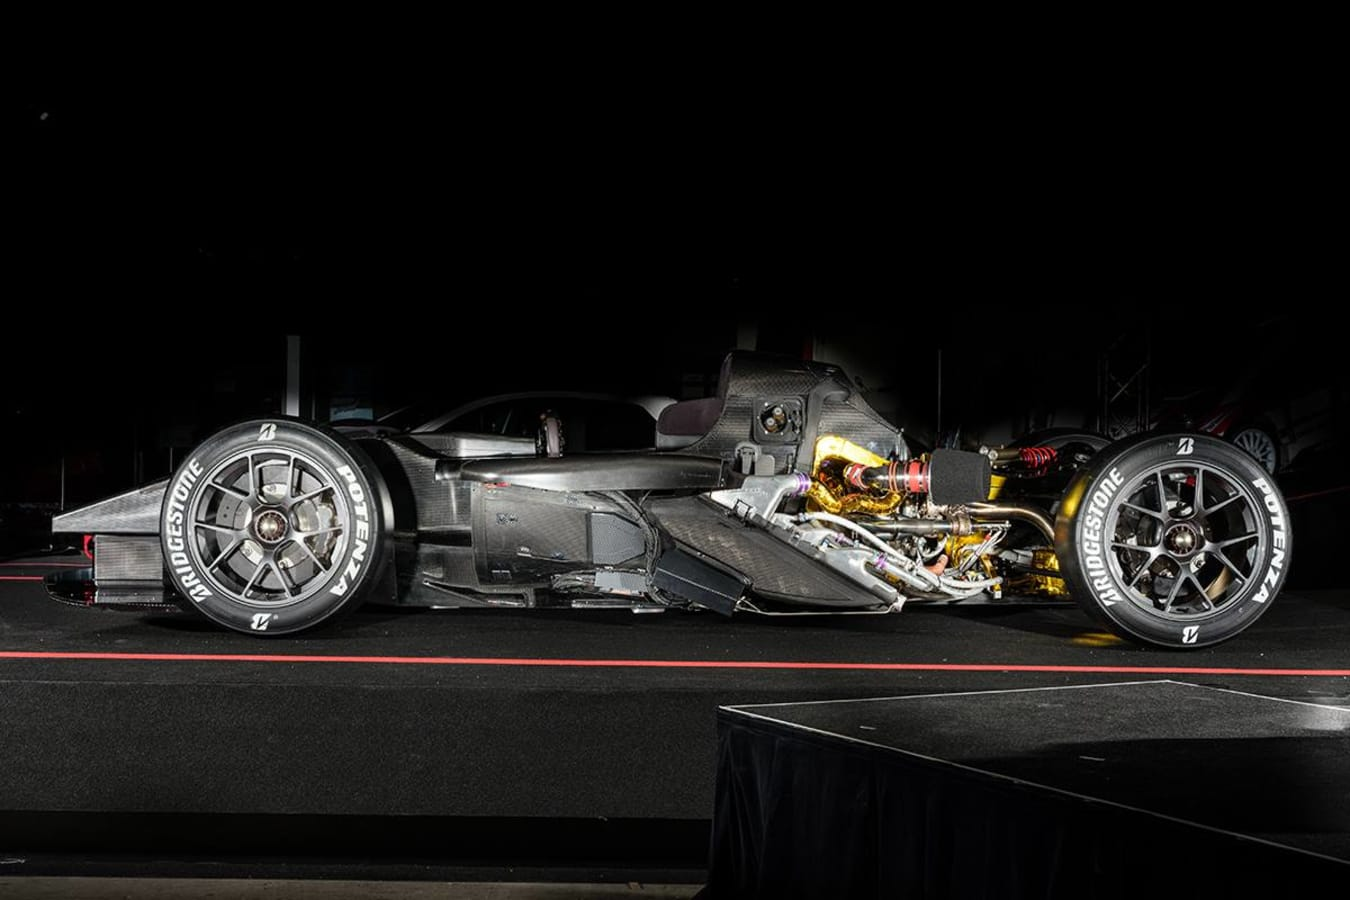 Toyota GR Super Sport chassis and drivetrain